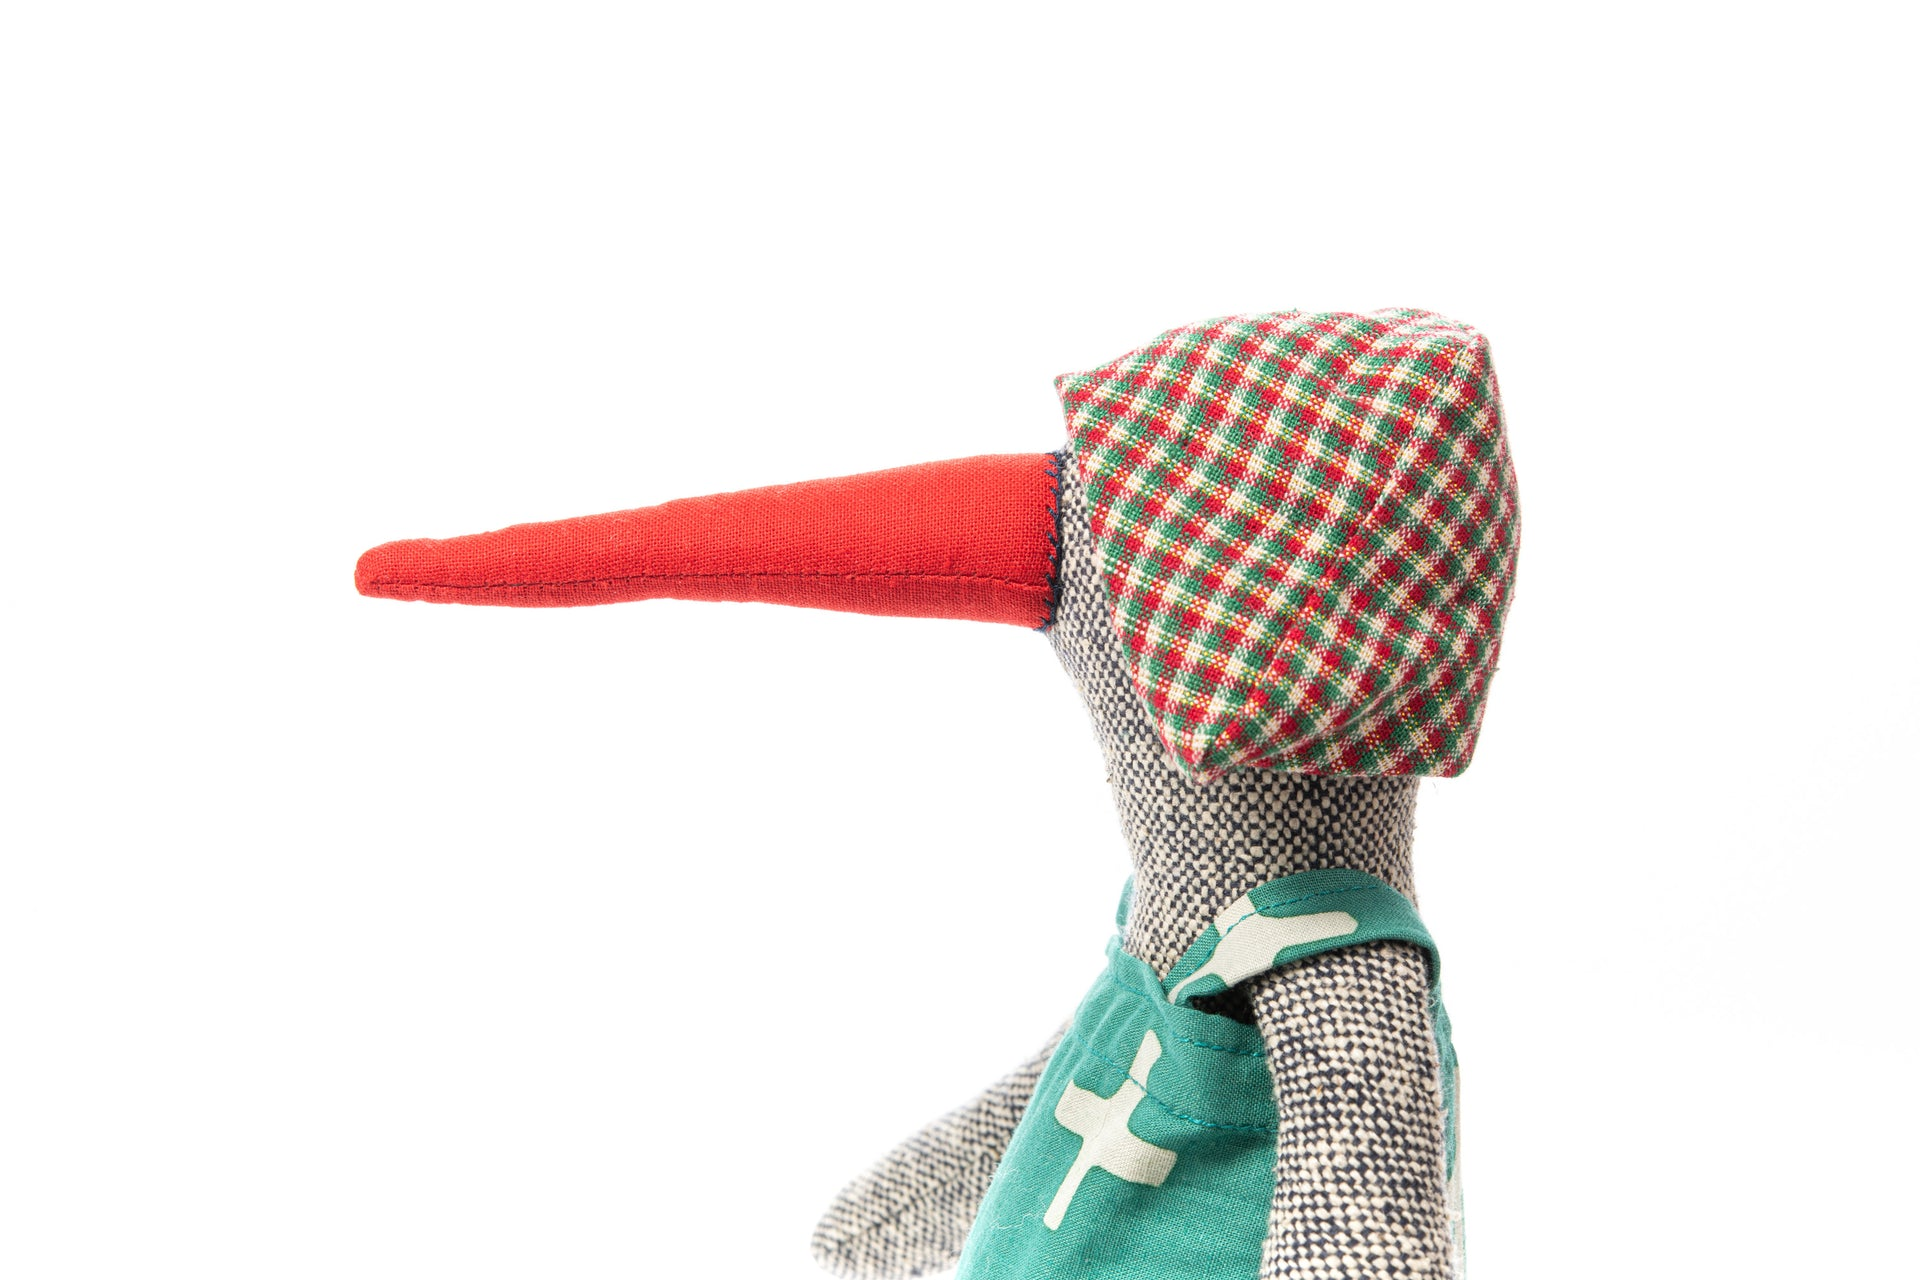 Black doll, Doll for girl, Girl birthday gift, Bird doll, Fabric doll, Handmade doll, Eco friendly gift, Plush doll, Handmade decor doll